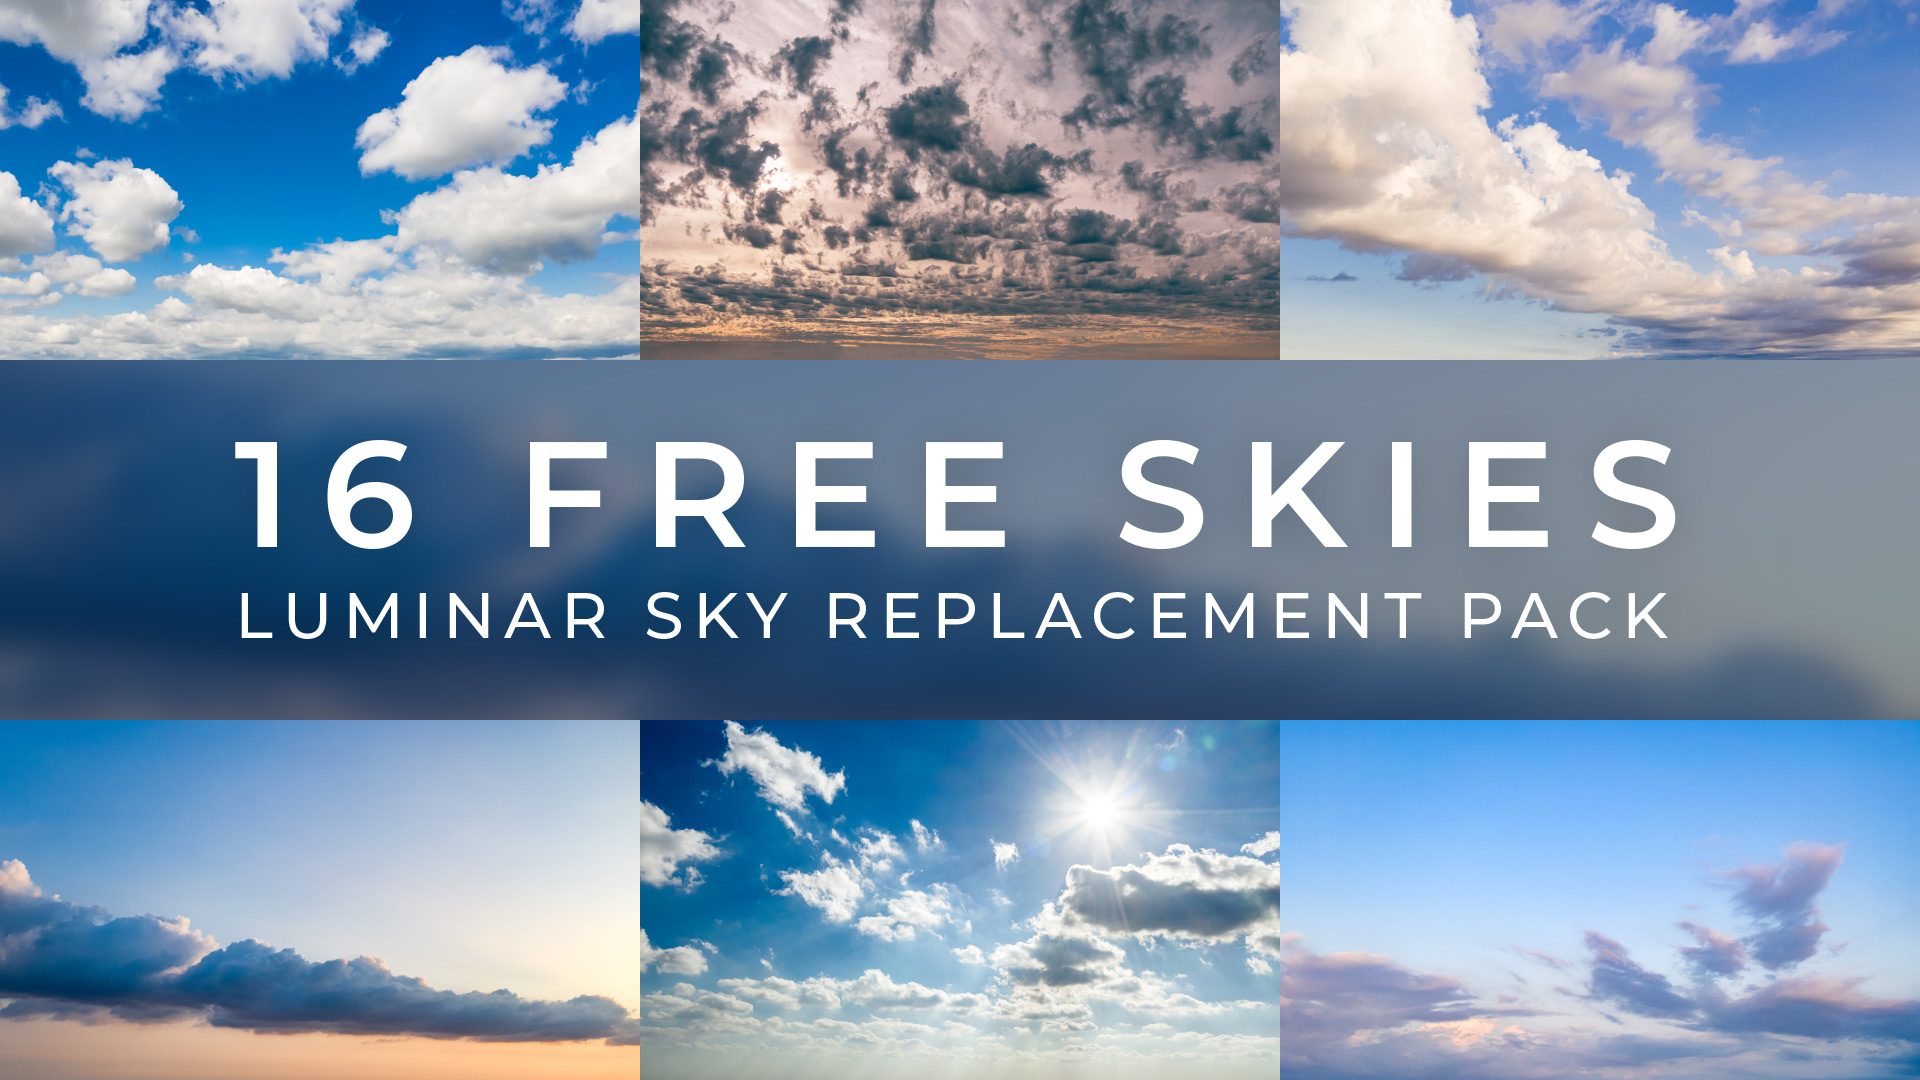 Free Luminar Sky Replacement Pack   New Layer